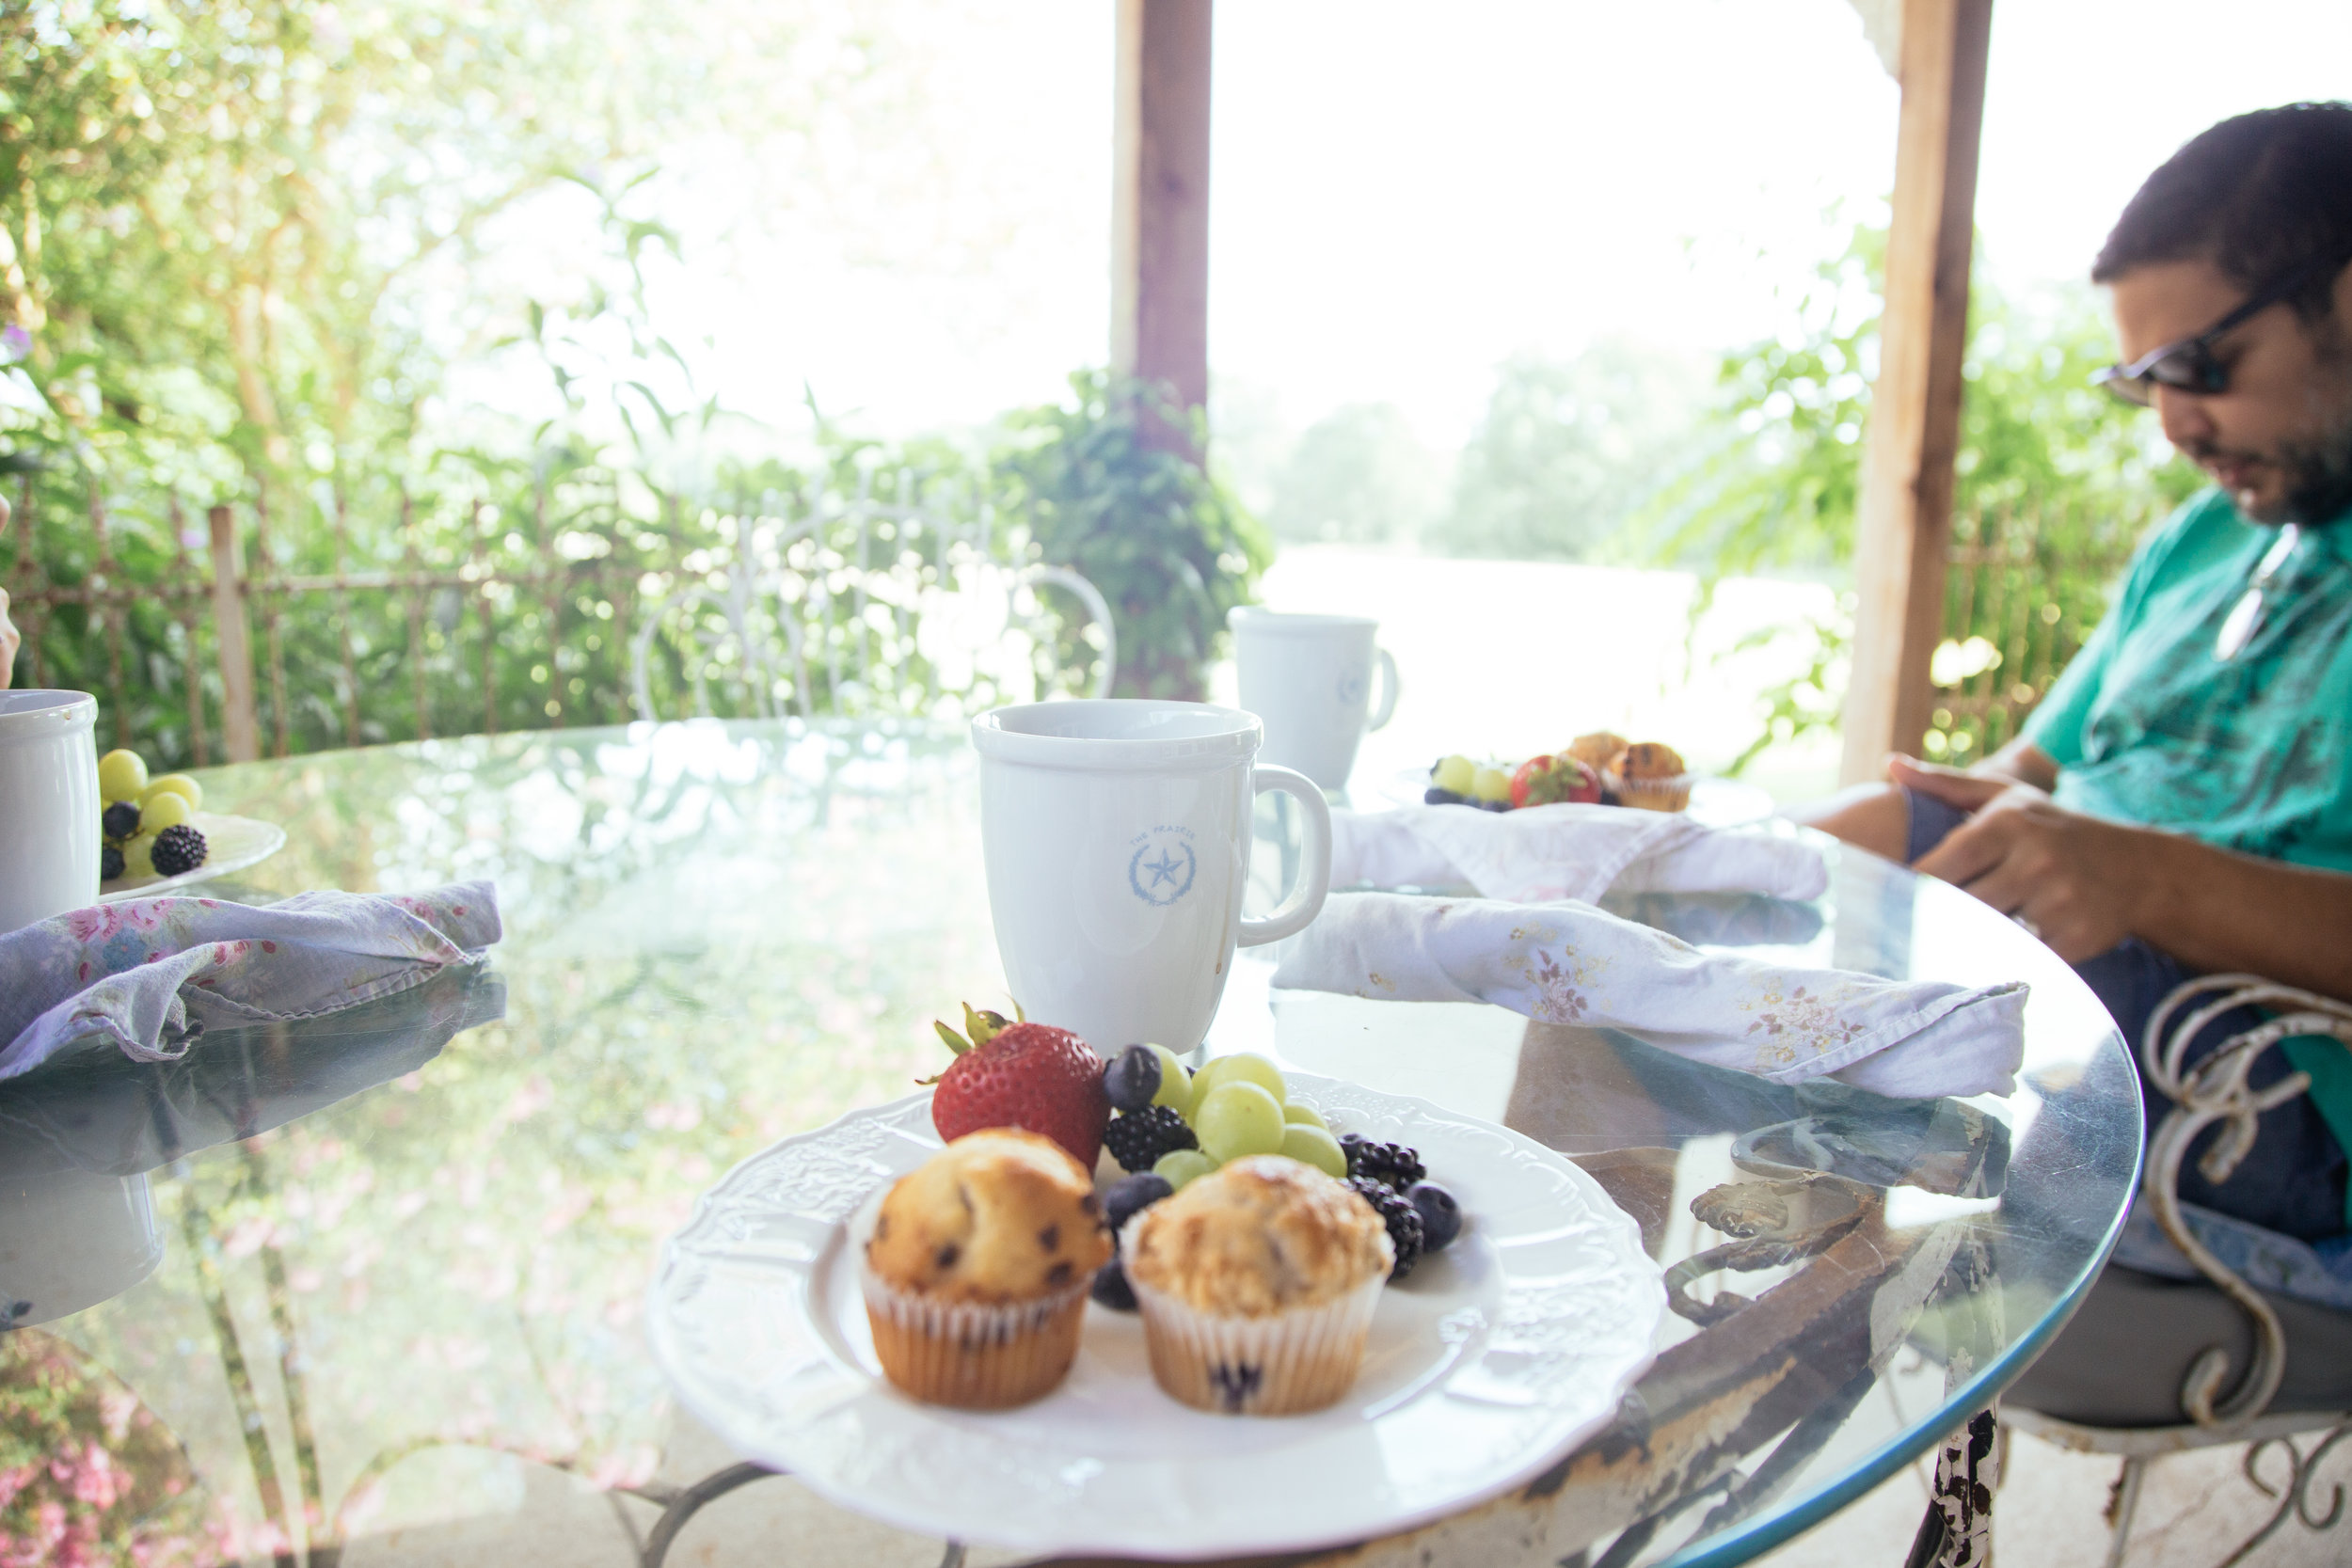 Breakfast and coffee on the porch.